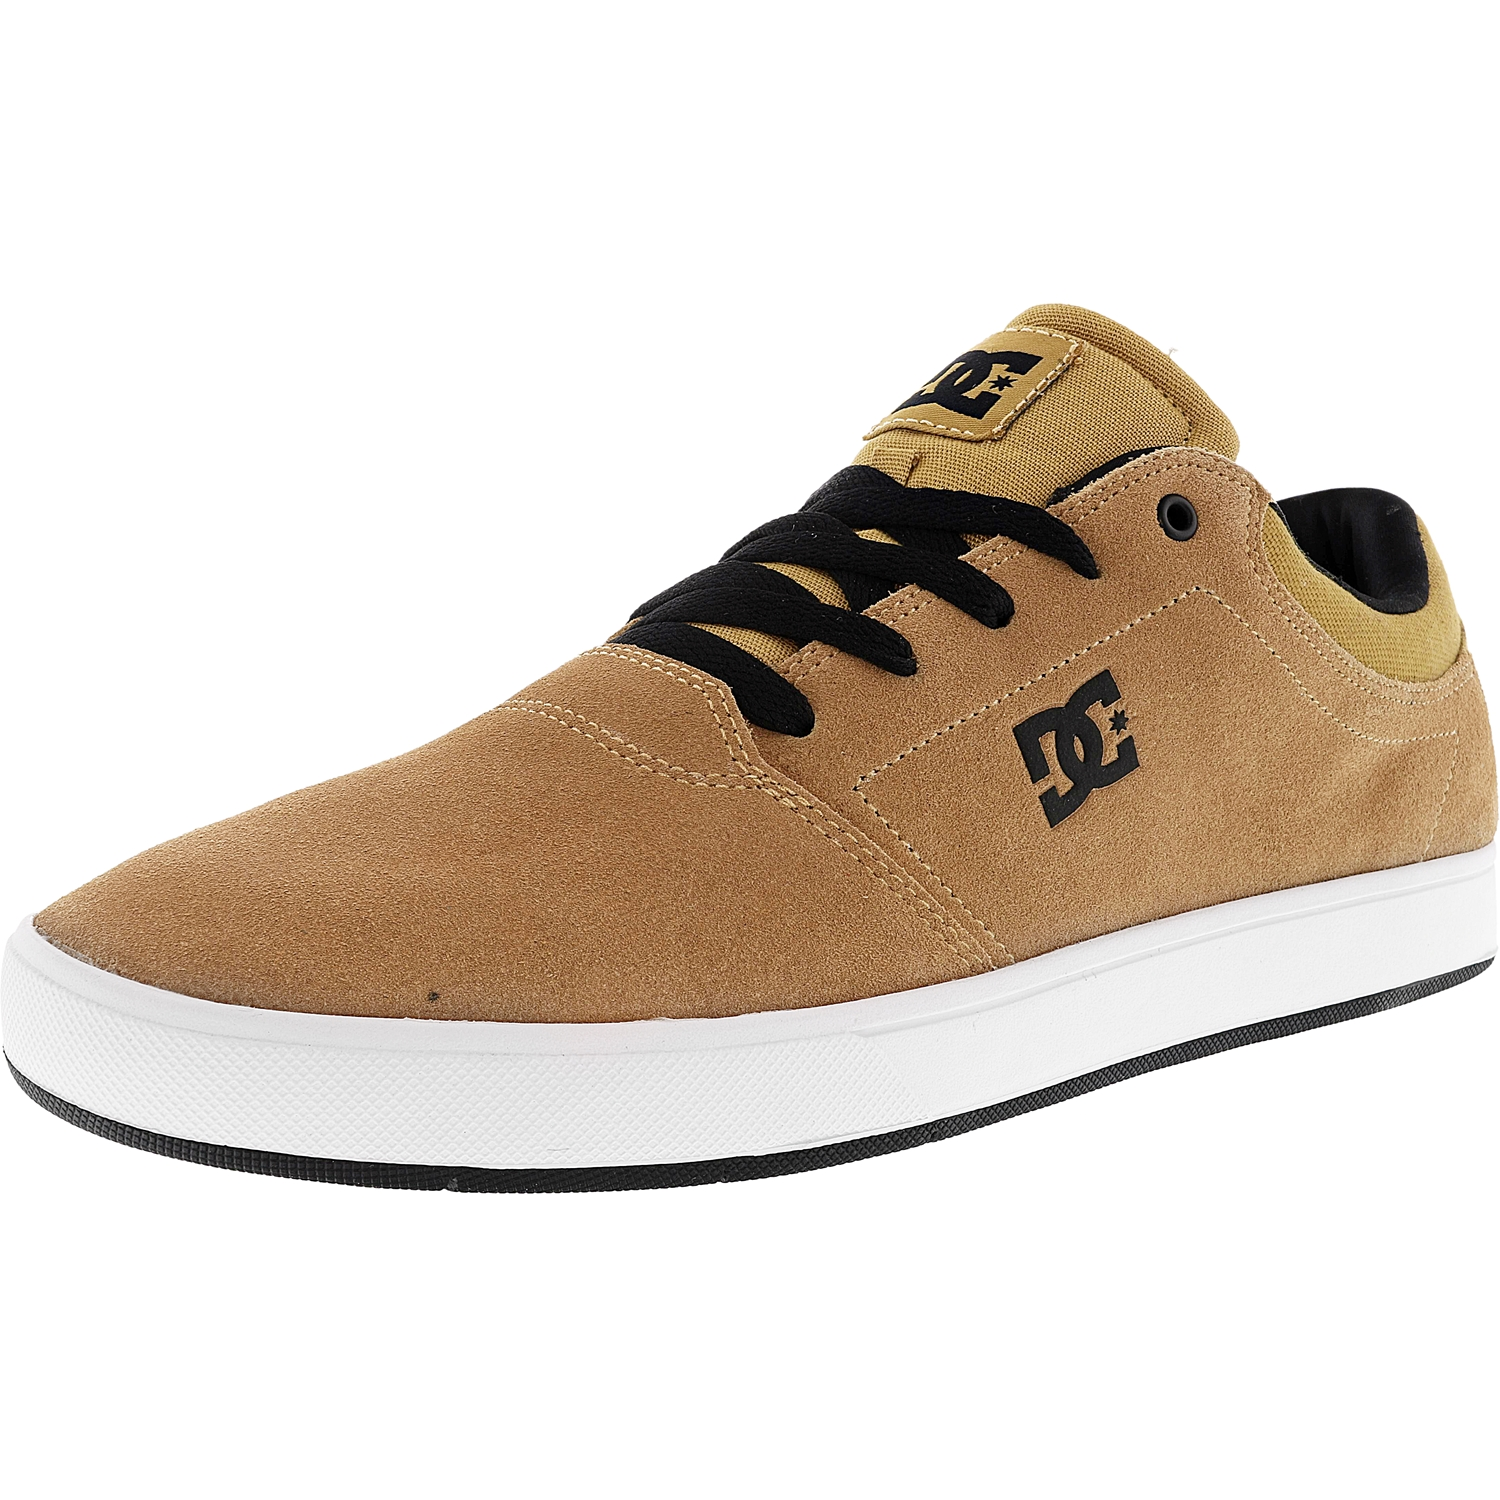 Dc Men's Crisis Tan Ankle-High Suede Skateboarding Shoe - 11.5M